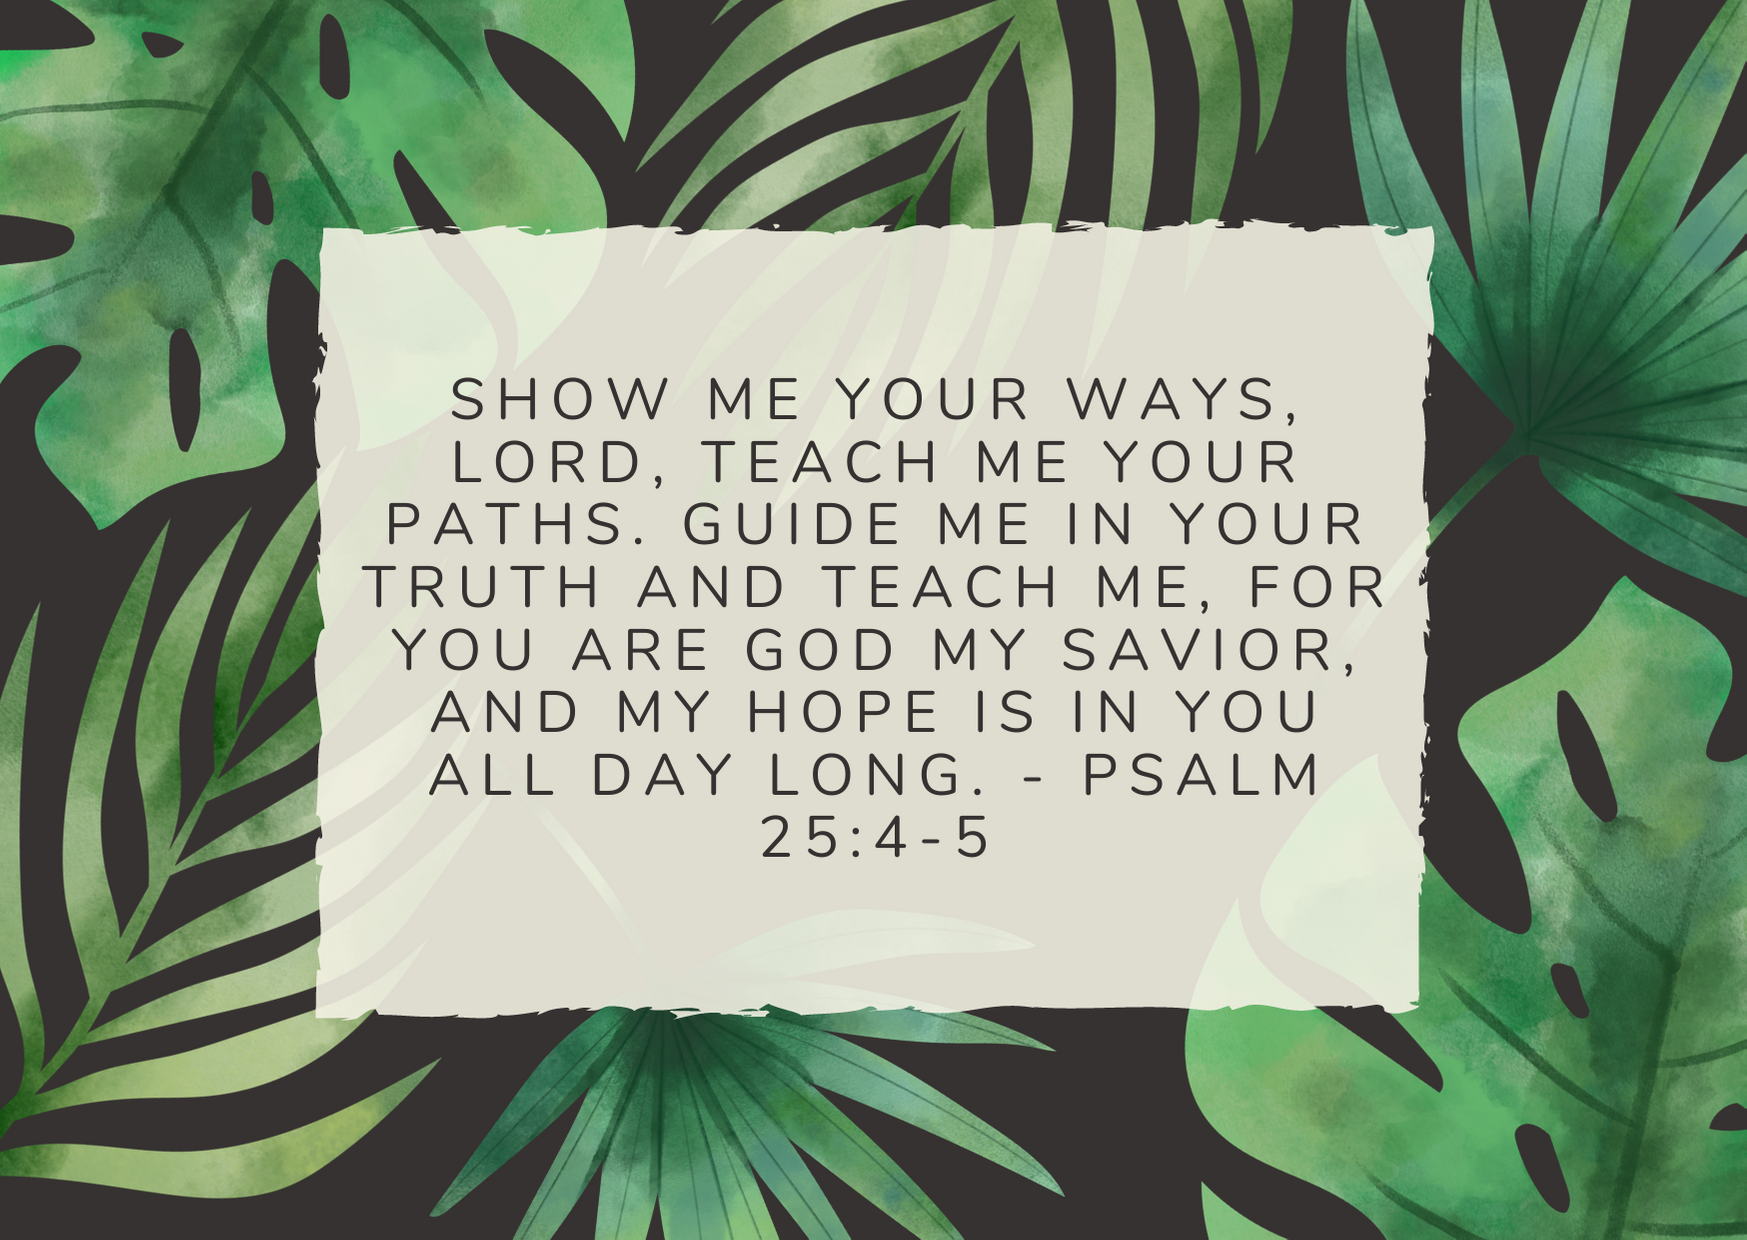 Show me your ways, Lord, teach me your paths. Guide me in your truth and teach me, for you are God my Savior, and my hope is in you all day long. - Psalm 25:4-5